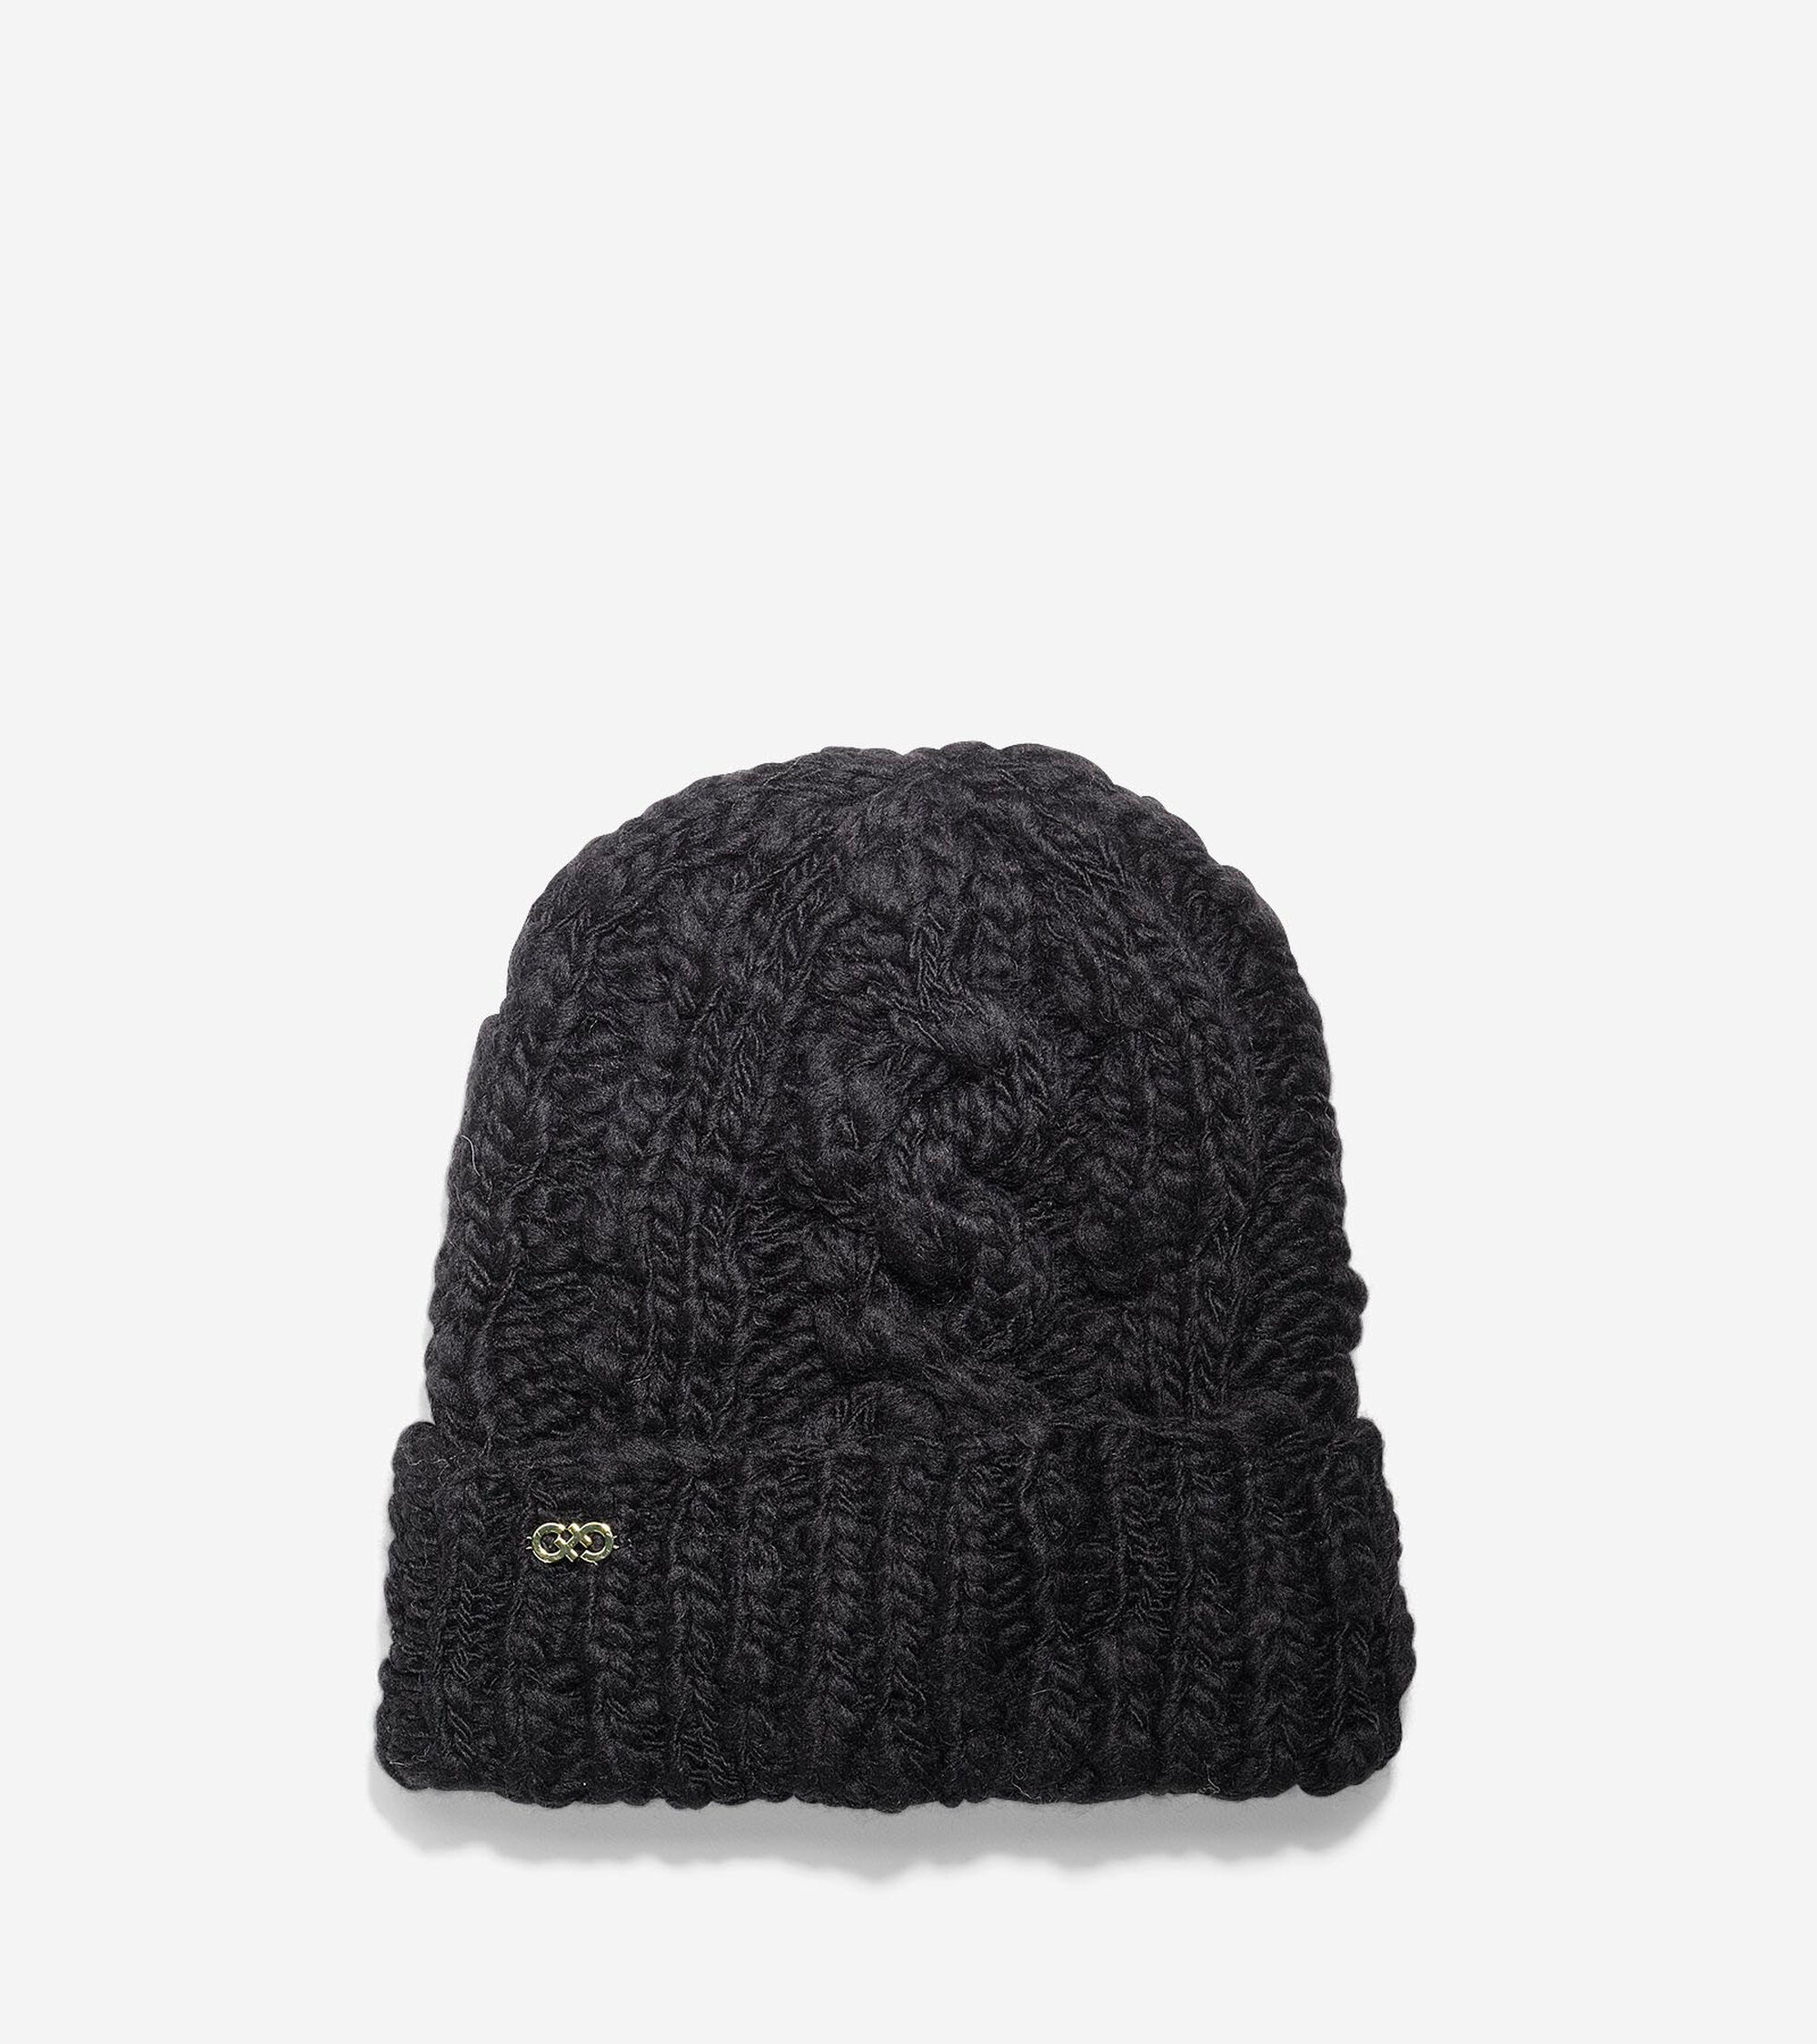 a3752a58d85 Women s Chunky Cable Cuff Hat in Black